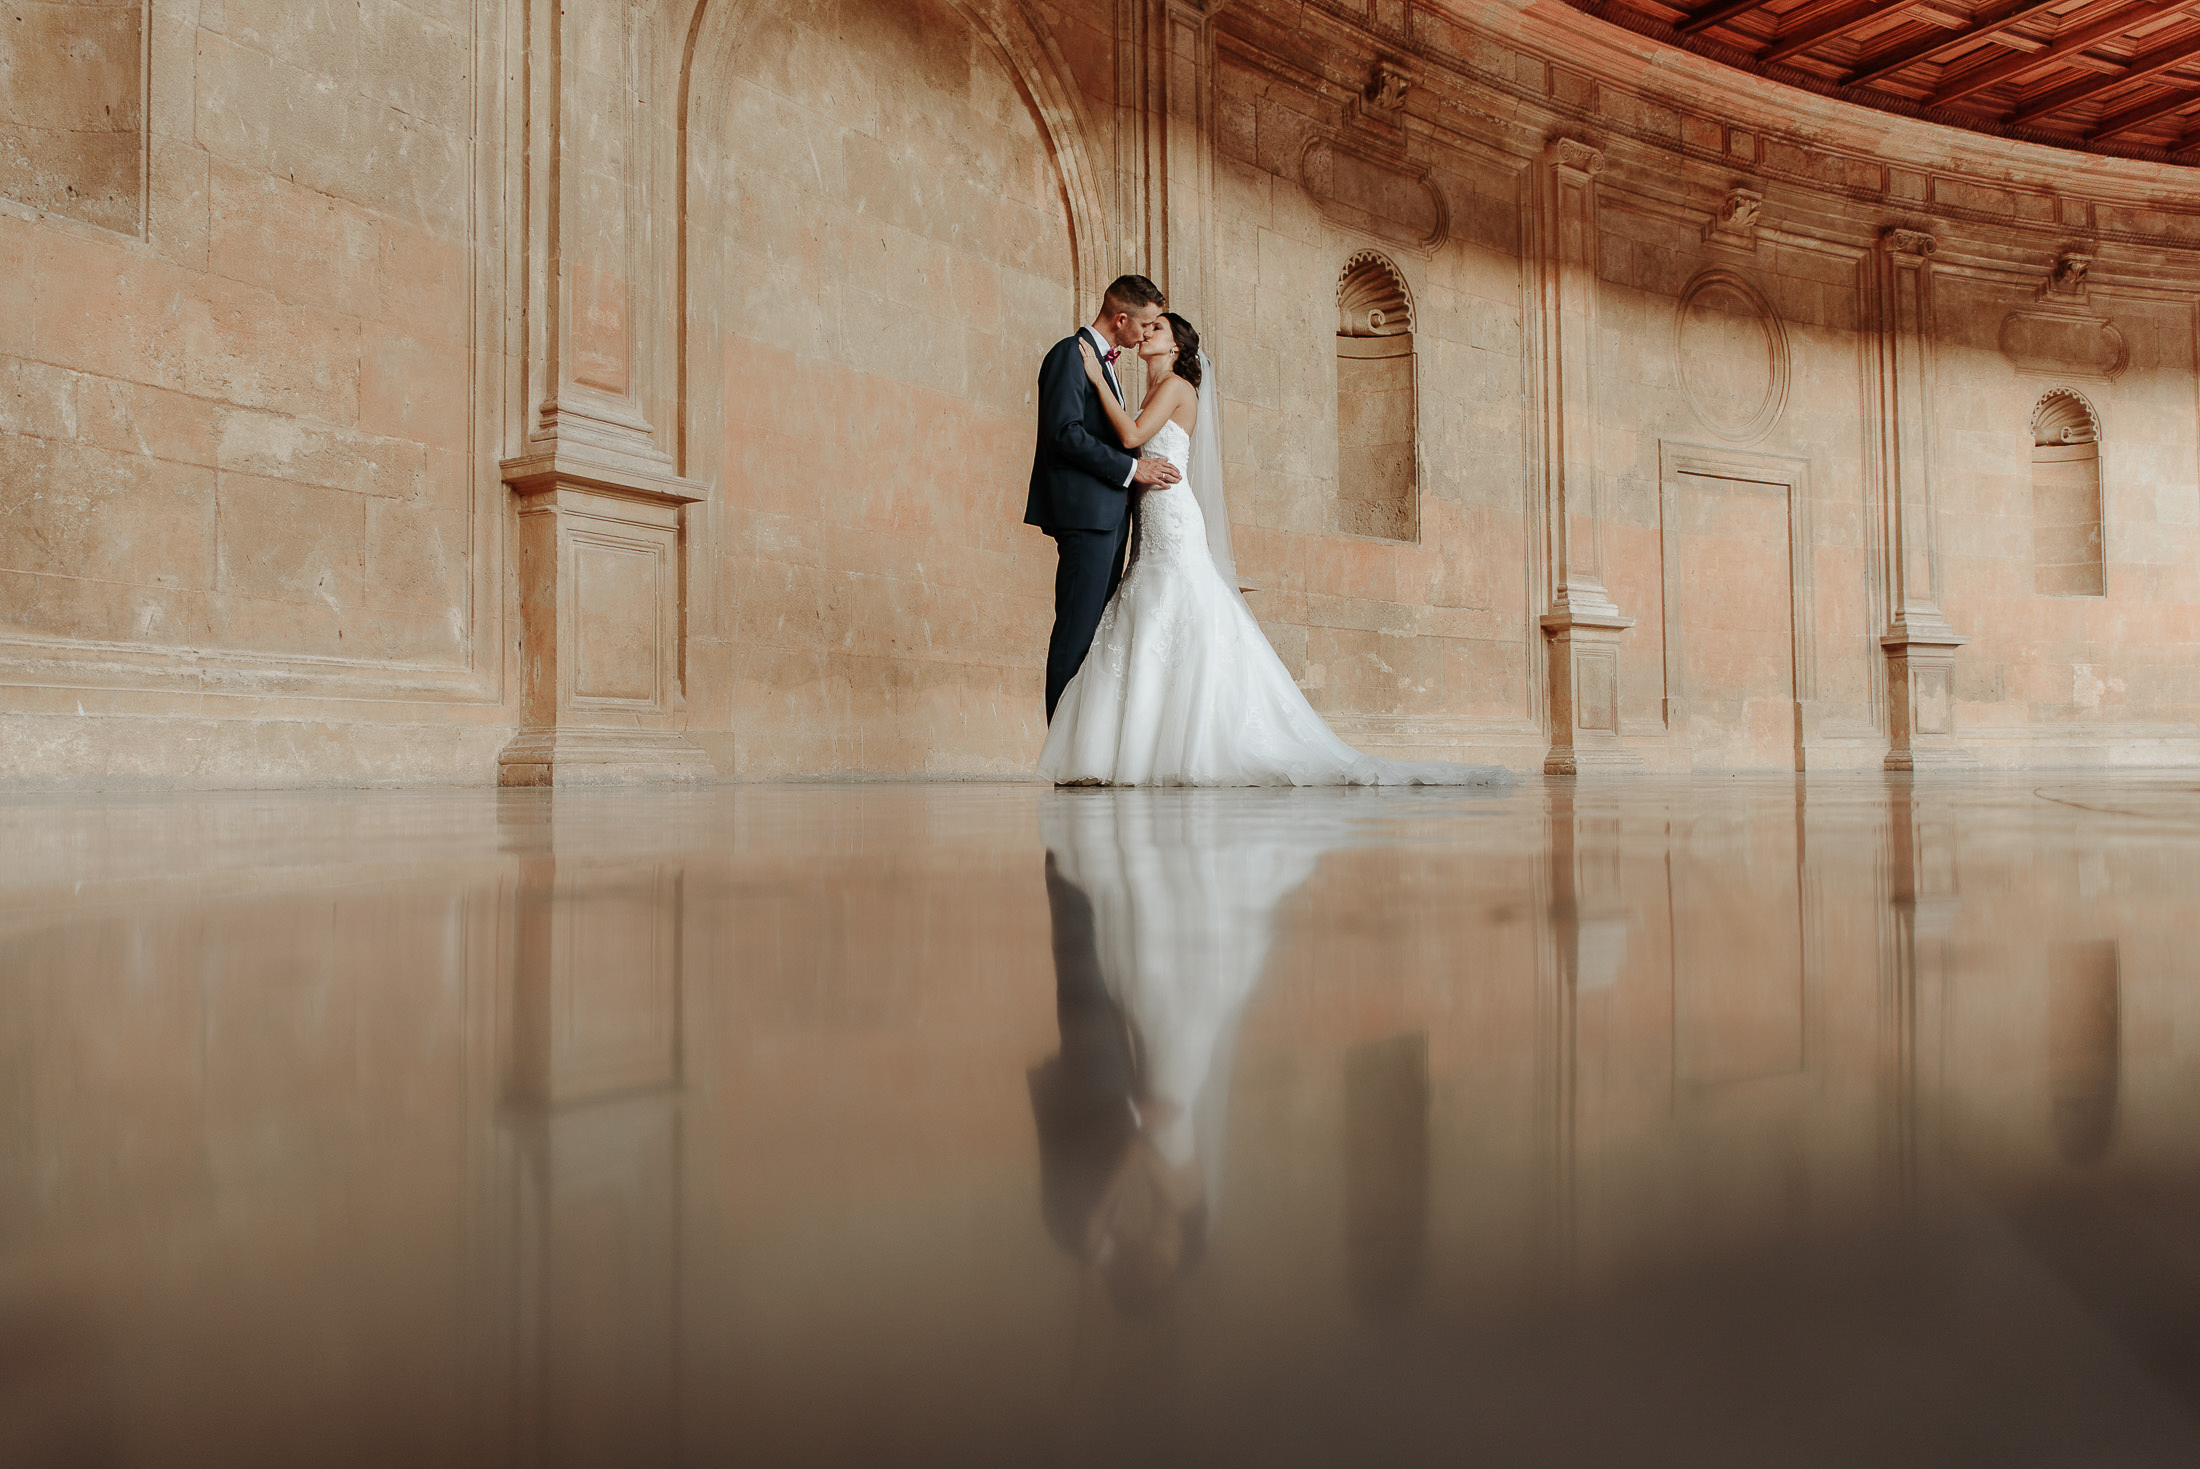 Reflections of Alhambr, Wedding in Alhambra